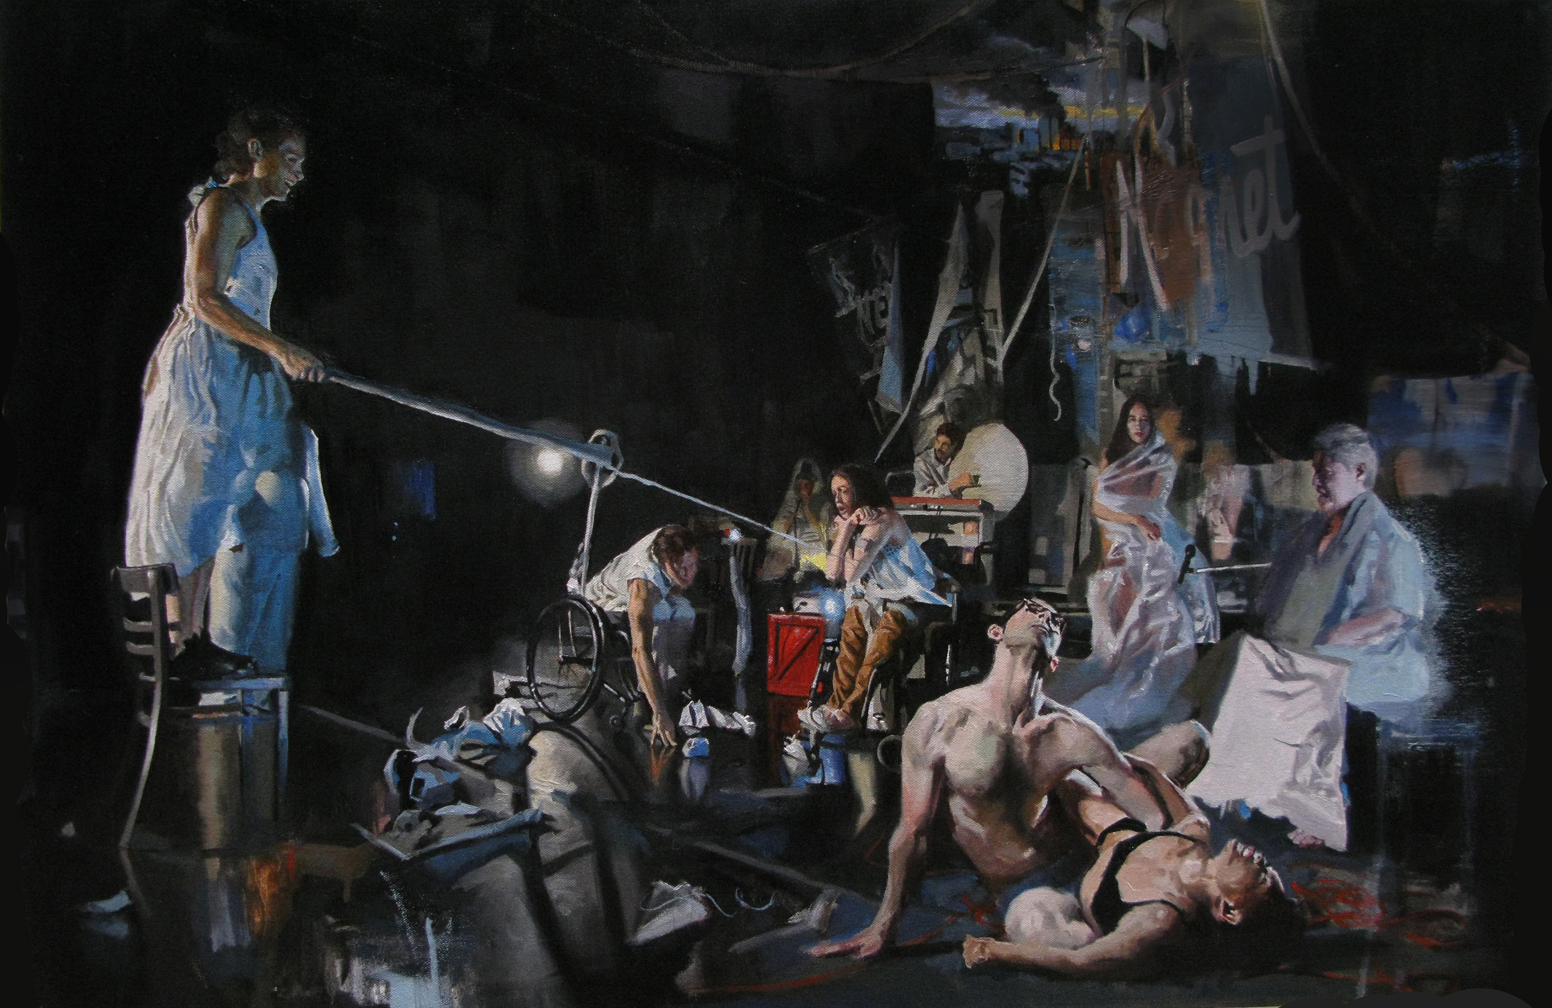 """Adam Caldwell    -  """"The Arc of the Narrative """", 24x36""""  , oil on canvas, 2015       Why did you create this work of art?     I have been creating elaborate photo shoots in collaboration with a theater/performance group in which we explore various narrative strategies. I am trying to integrate the performances into the gallery setting with installation and video as well as paintings.   Why did you choose this profession?   I choose art as a profession because I thought I could make more money than being an experimental electronic instrumentalist.   If you could own any work of art what would it be?   Probably a Vermeer, maybe """"The Art of Painting""""."""